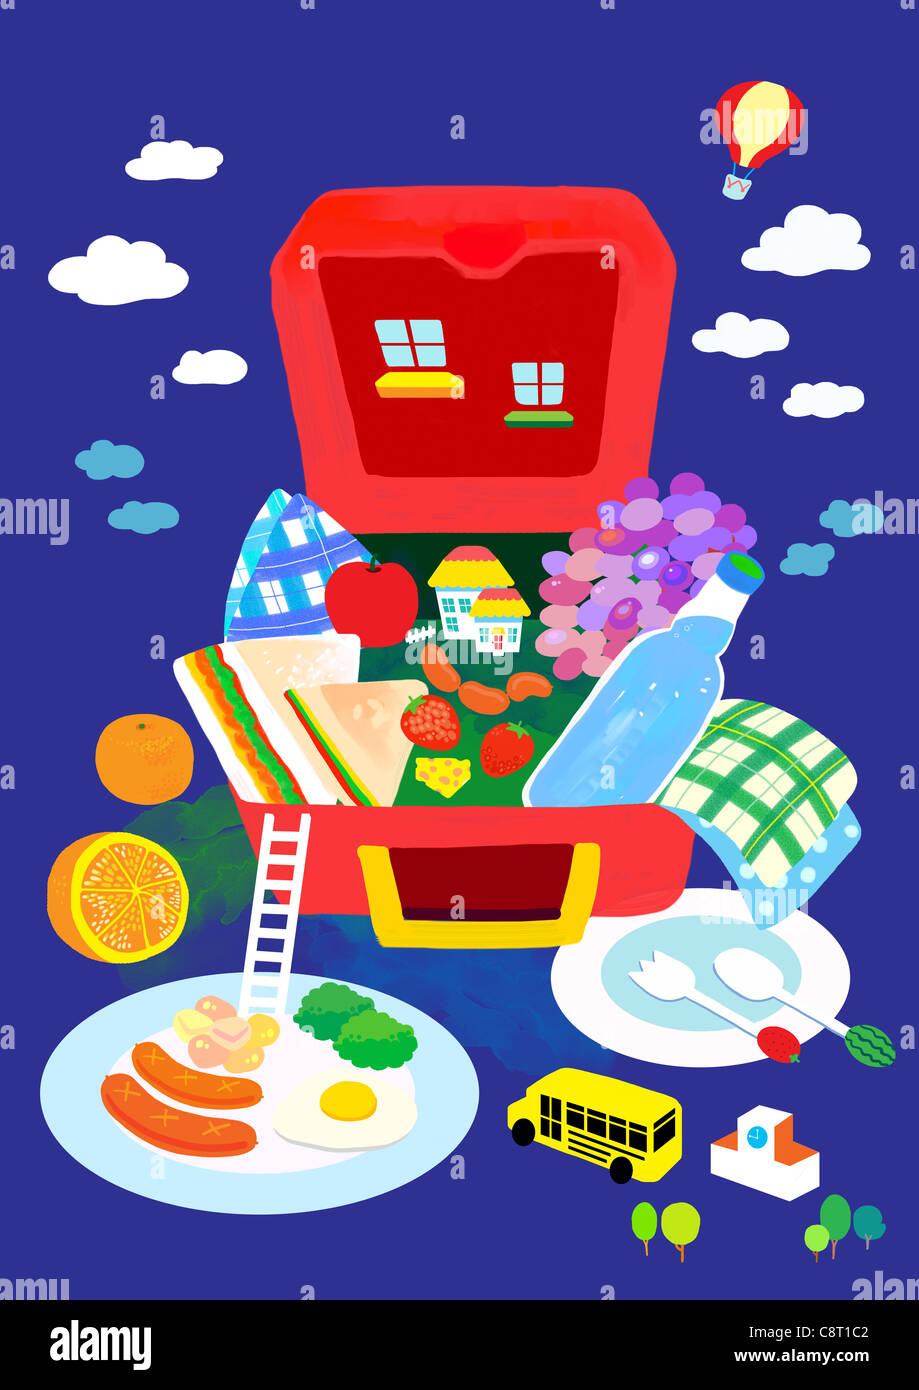 Opened Picnic Lunch Box - Stock Image